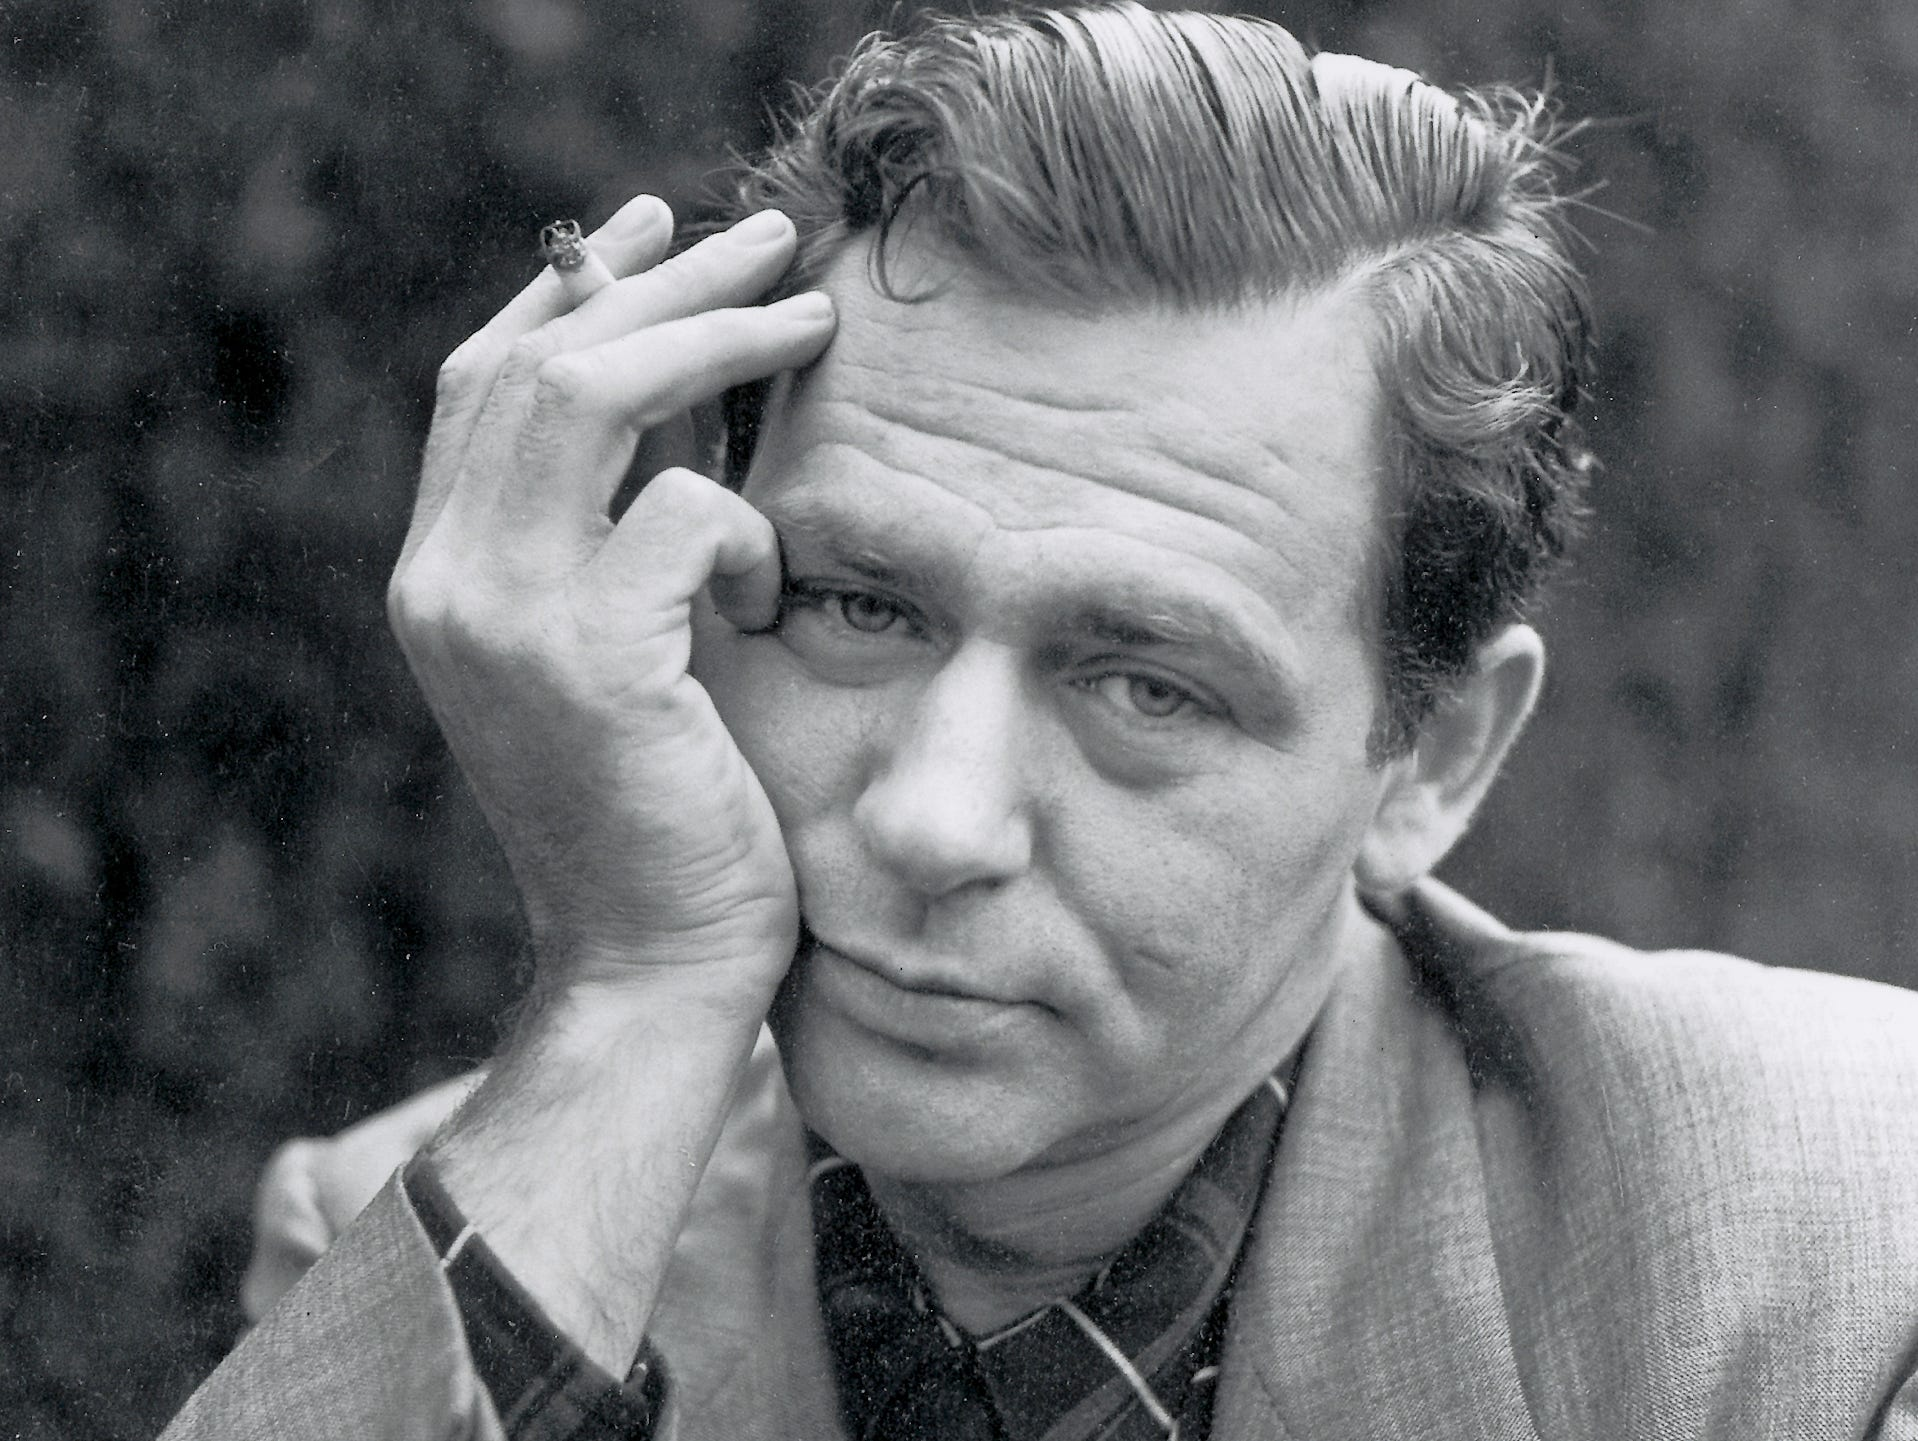 James Agee, in an undated photo. (Photo by Florence Homolka, courtesy of the Academy of Motion Picture Arts & Sciences)